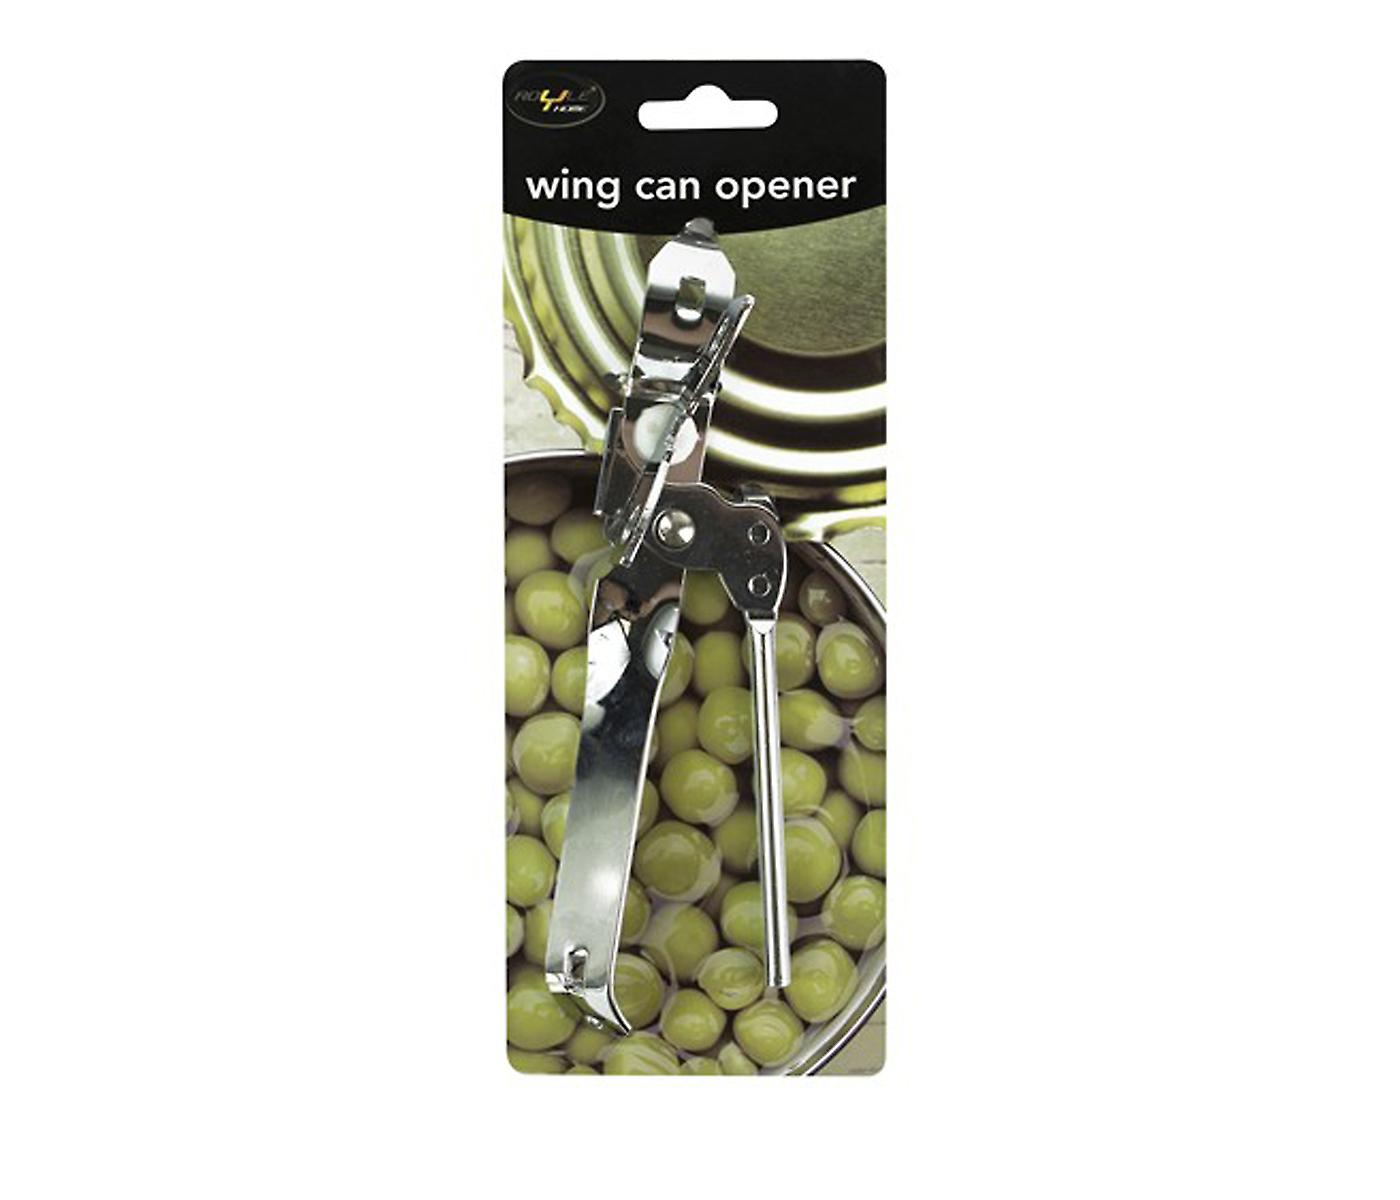 Can Opener Stainless Steel Winged Perfect Accessory for your Kitchen